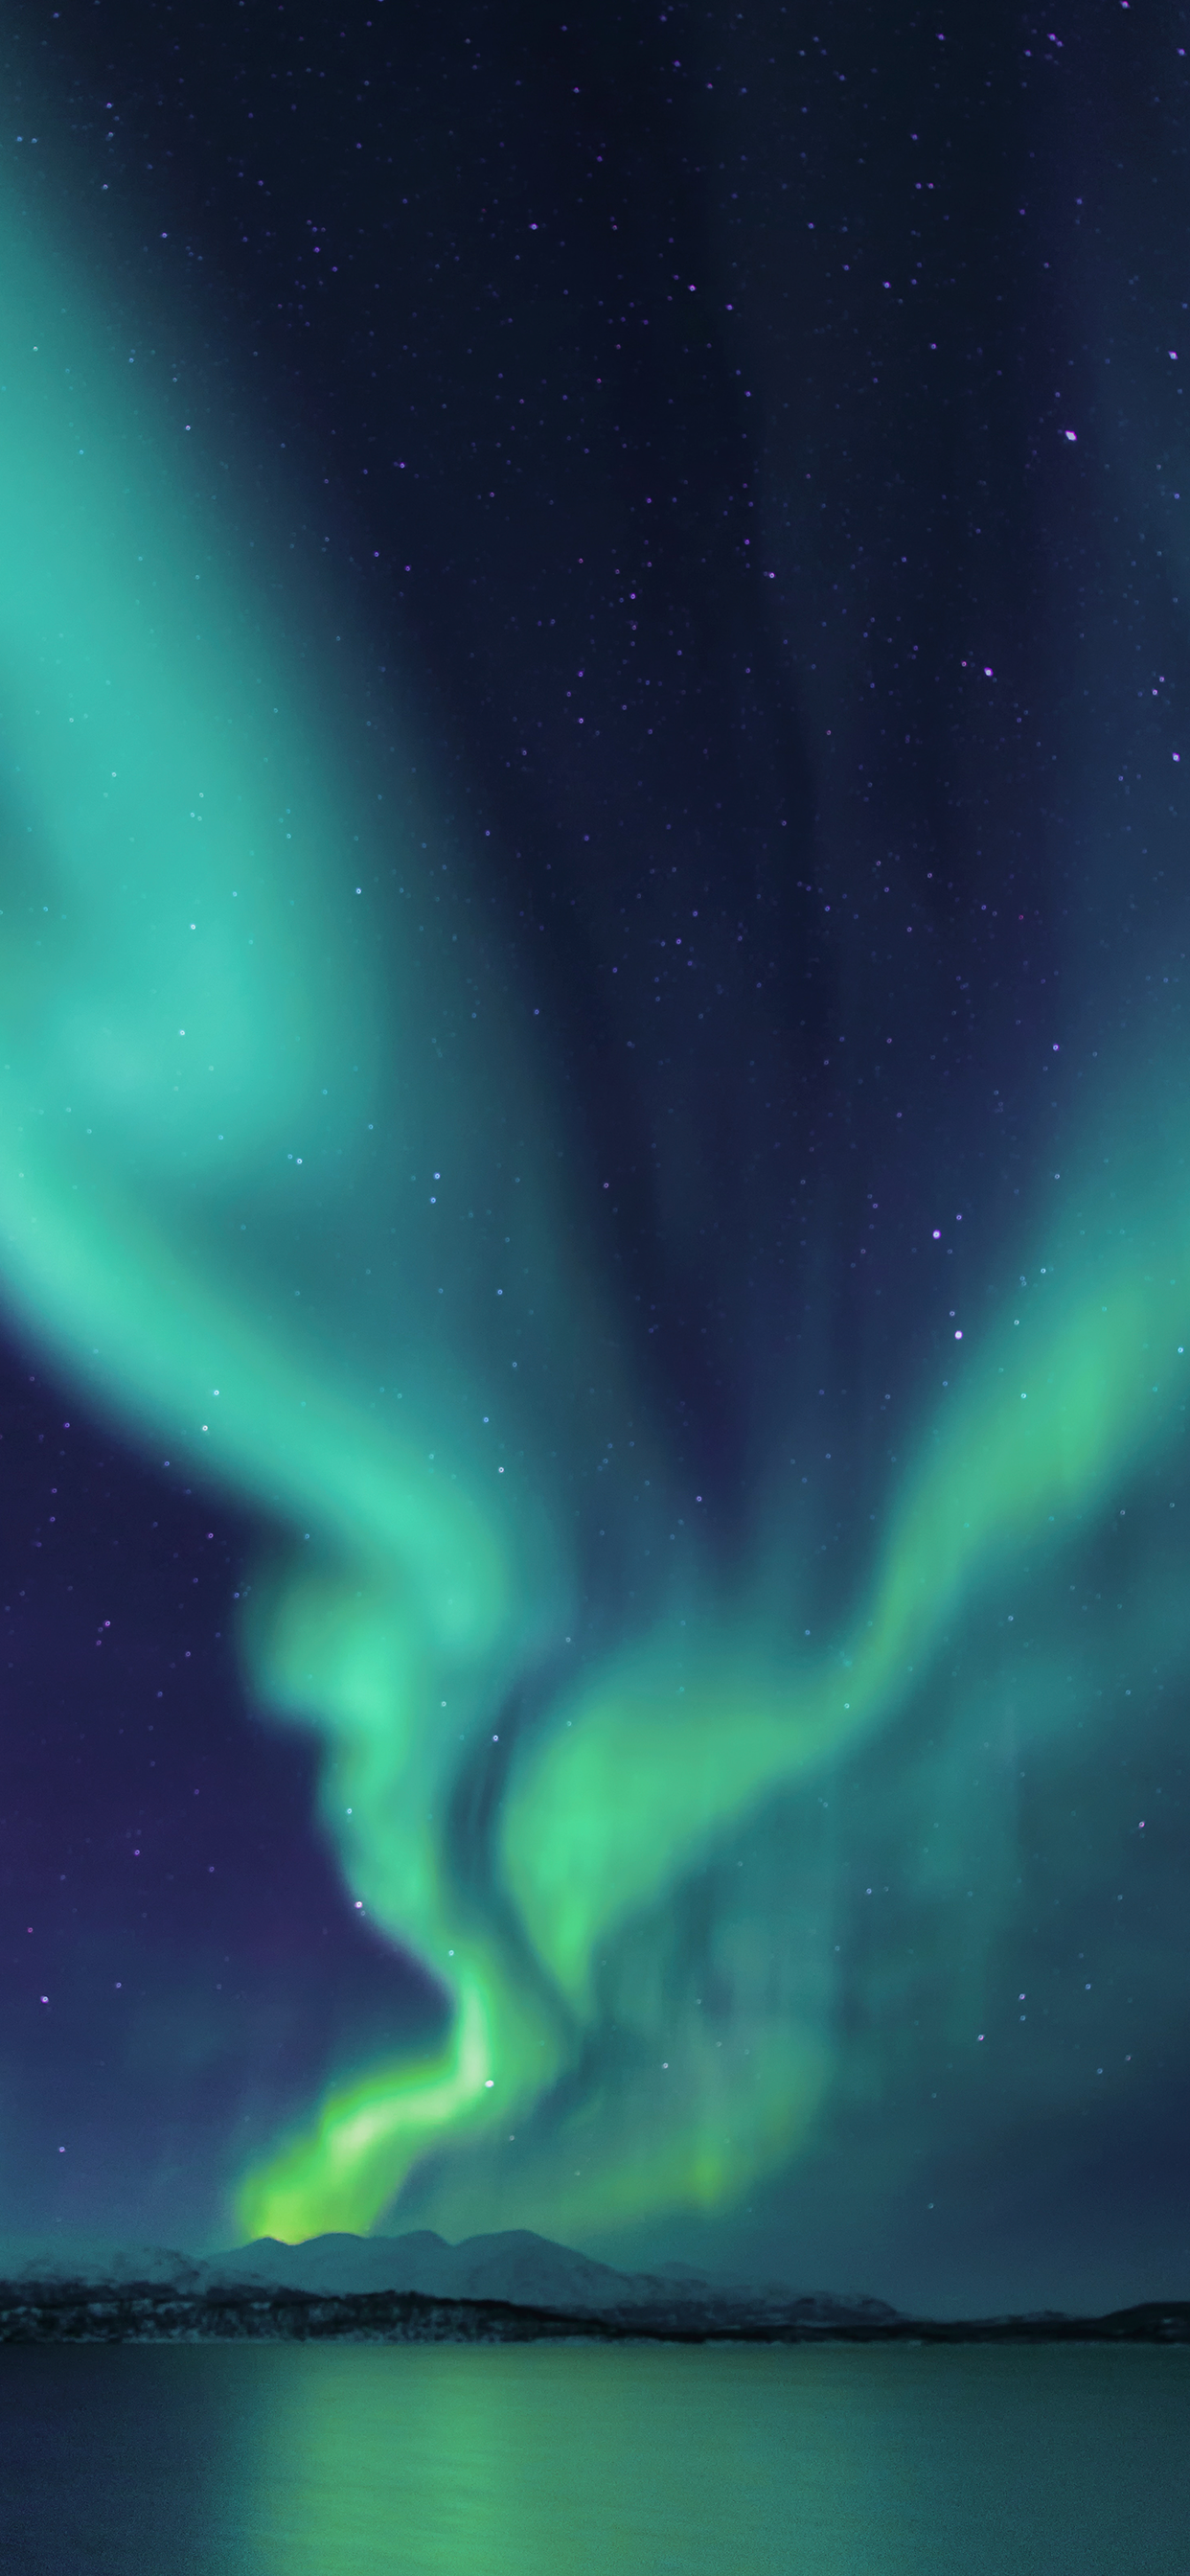 iPhone wallpaper aurora borealis river Northern Lights